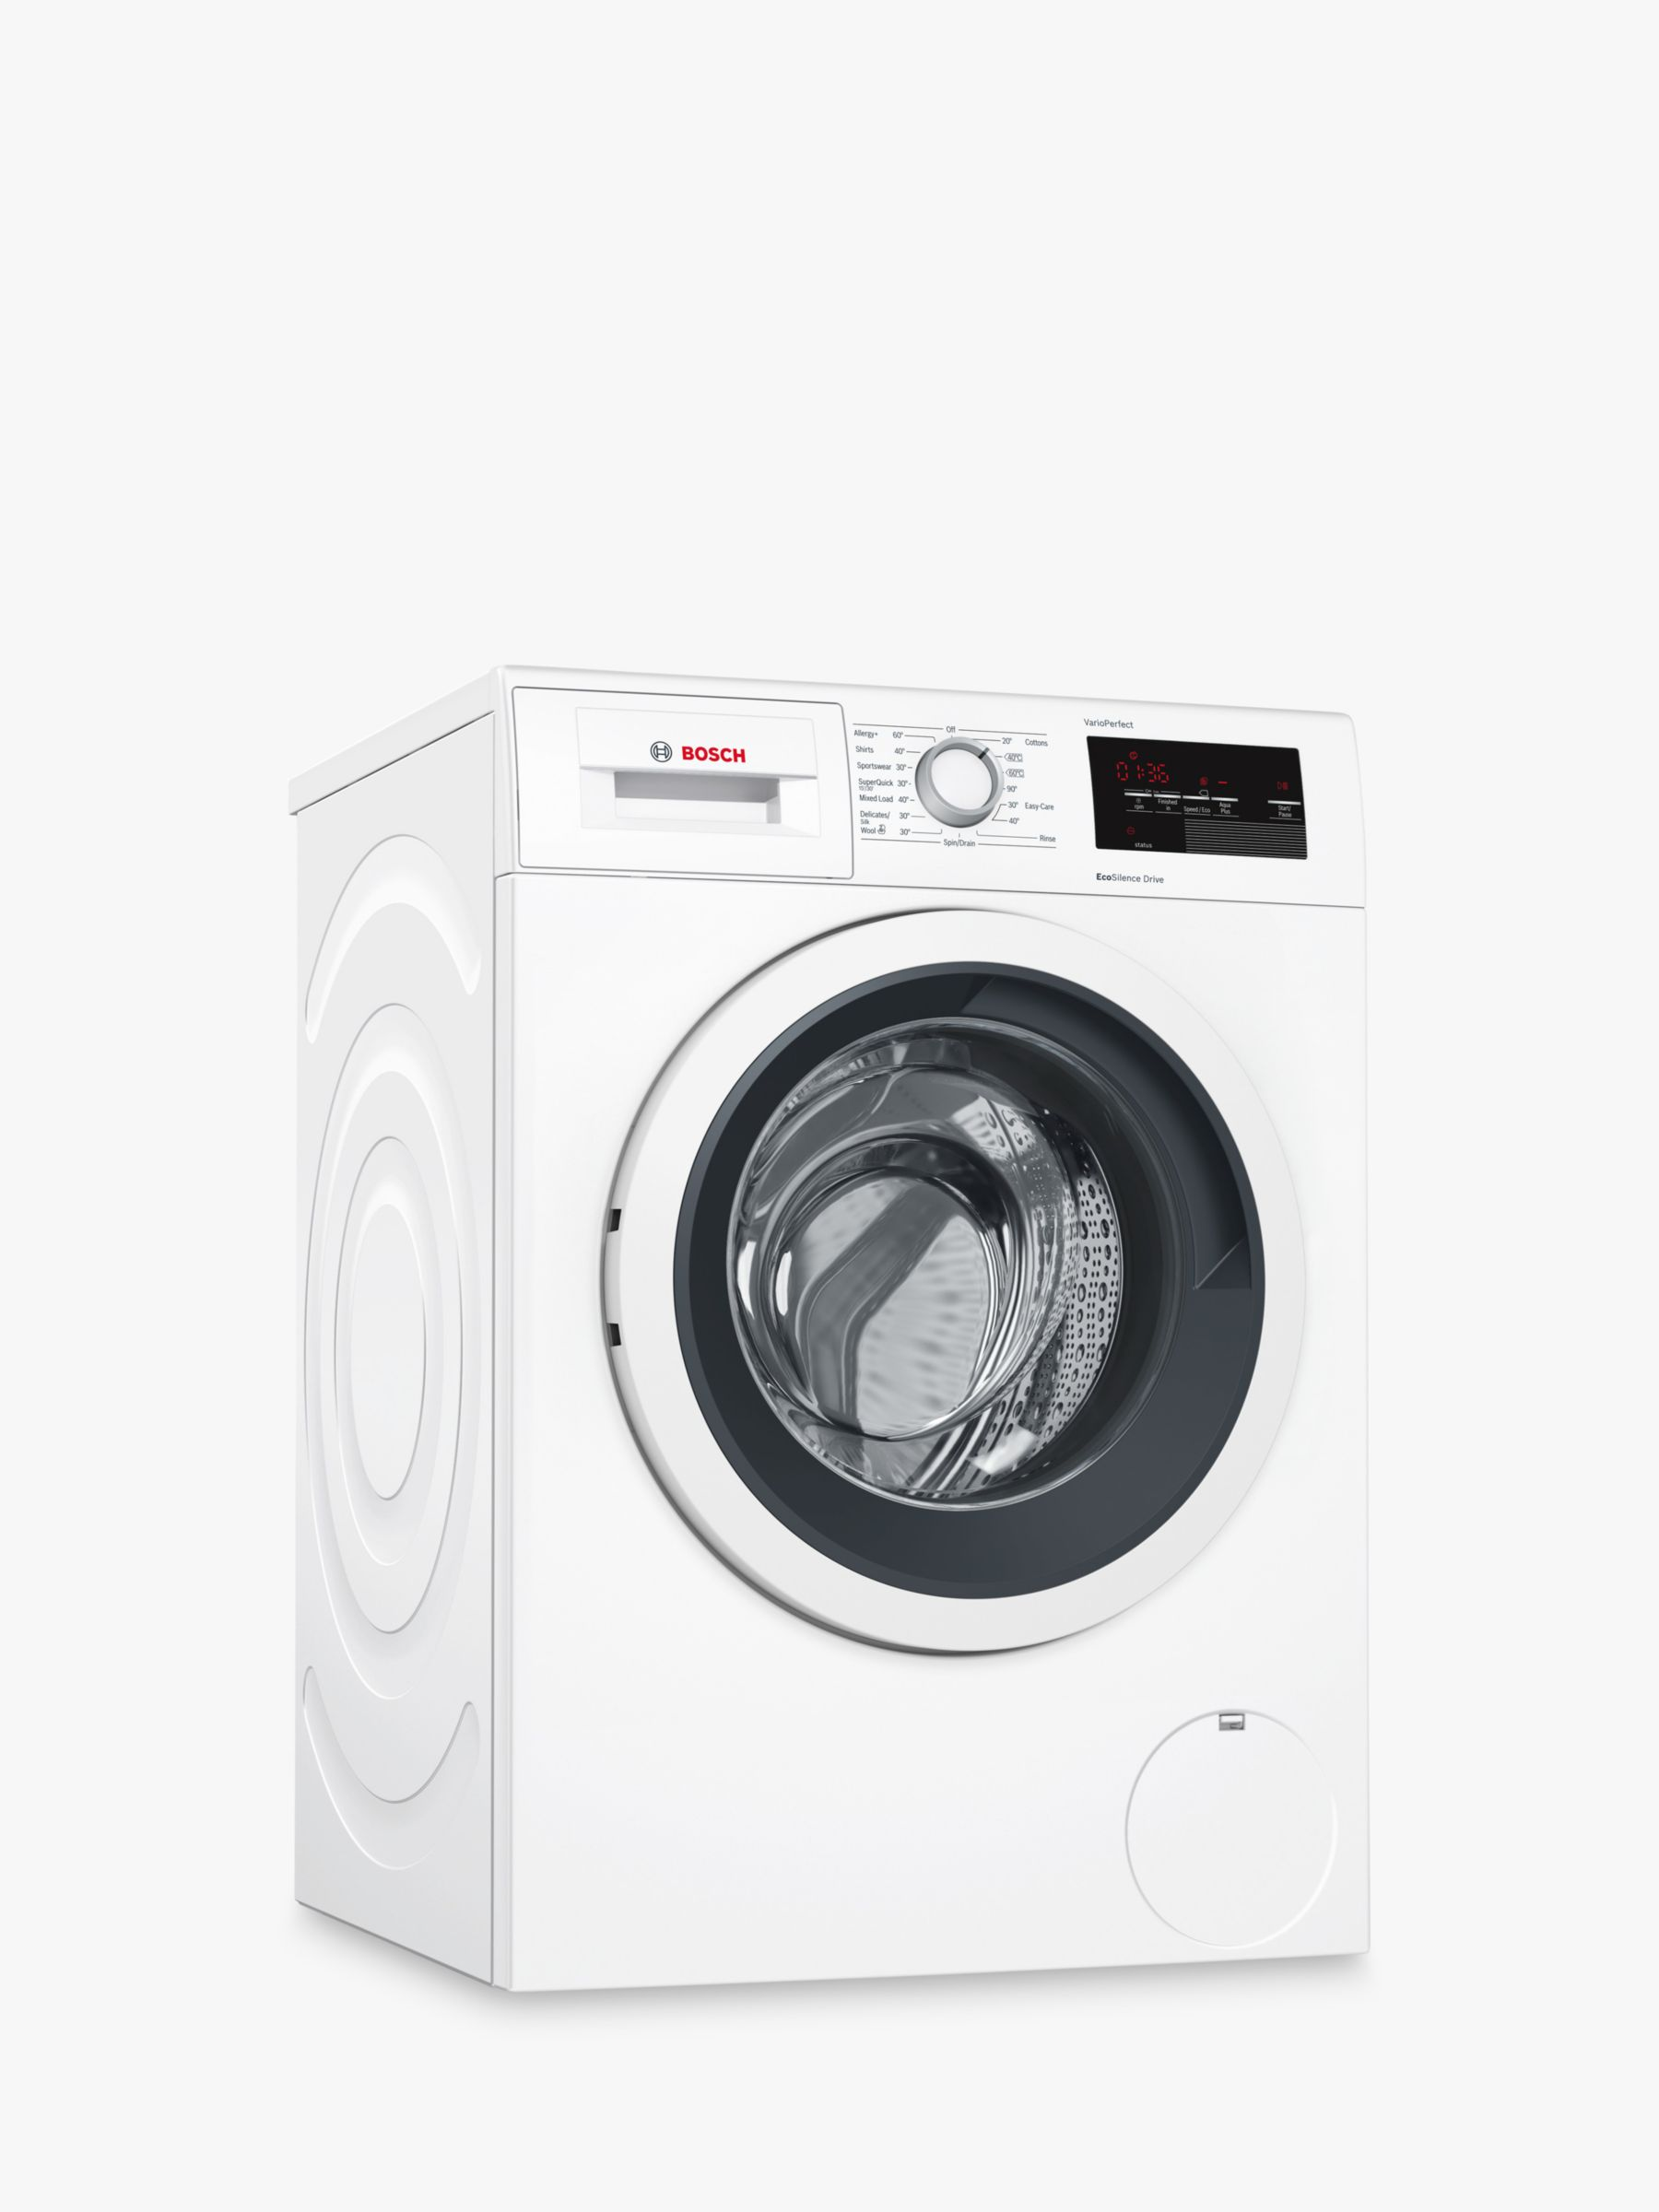 Bosch Bosch WAT28371GB Freestanding Washing Machine, 9kg Load, A+++ Energy Rating, 1400rpm Spin, White